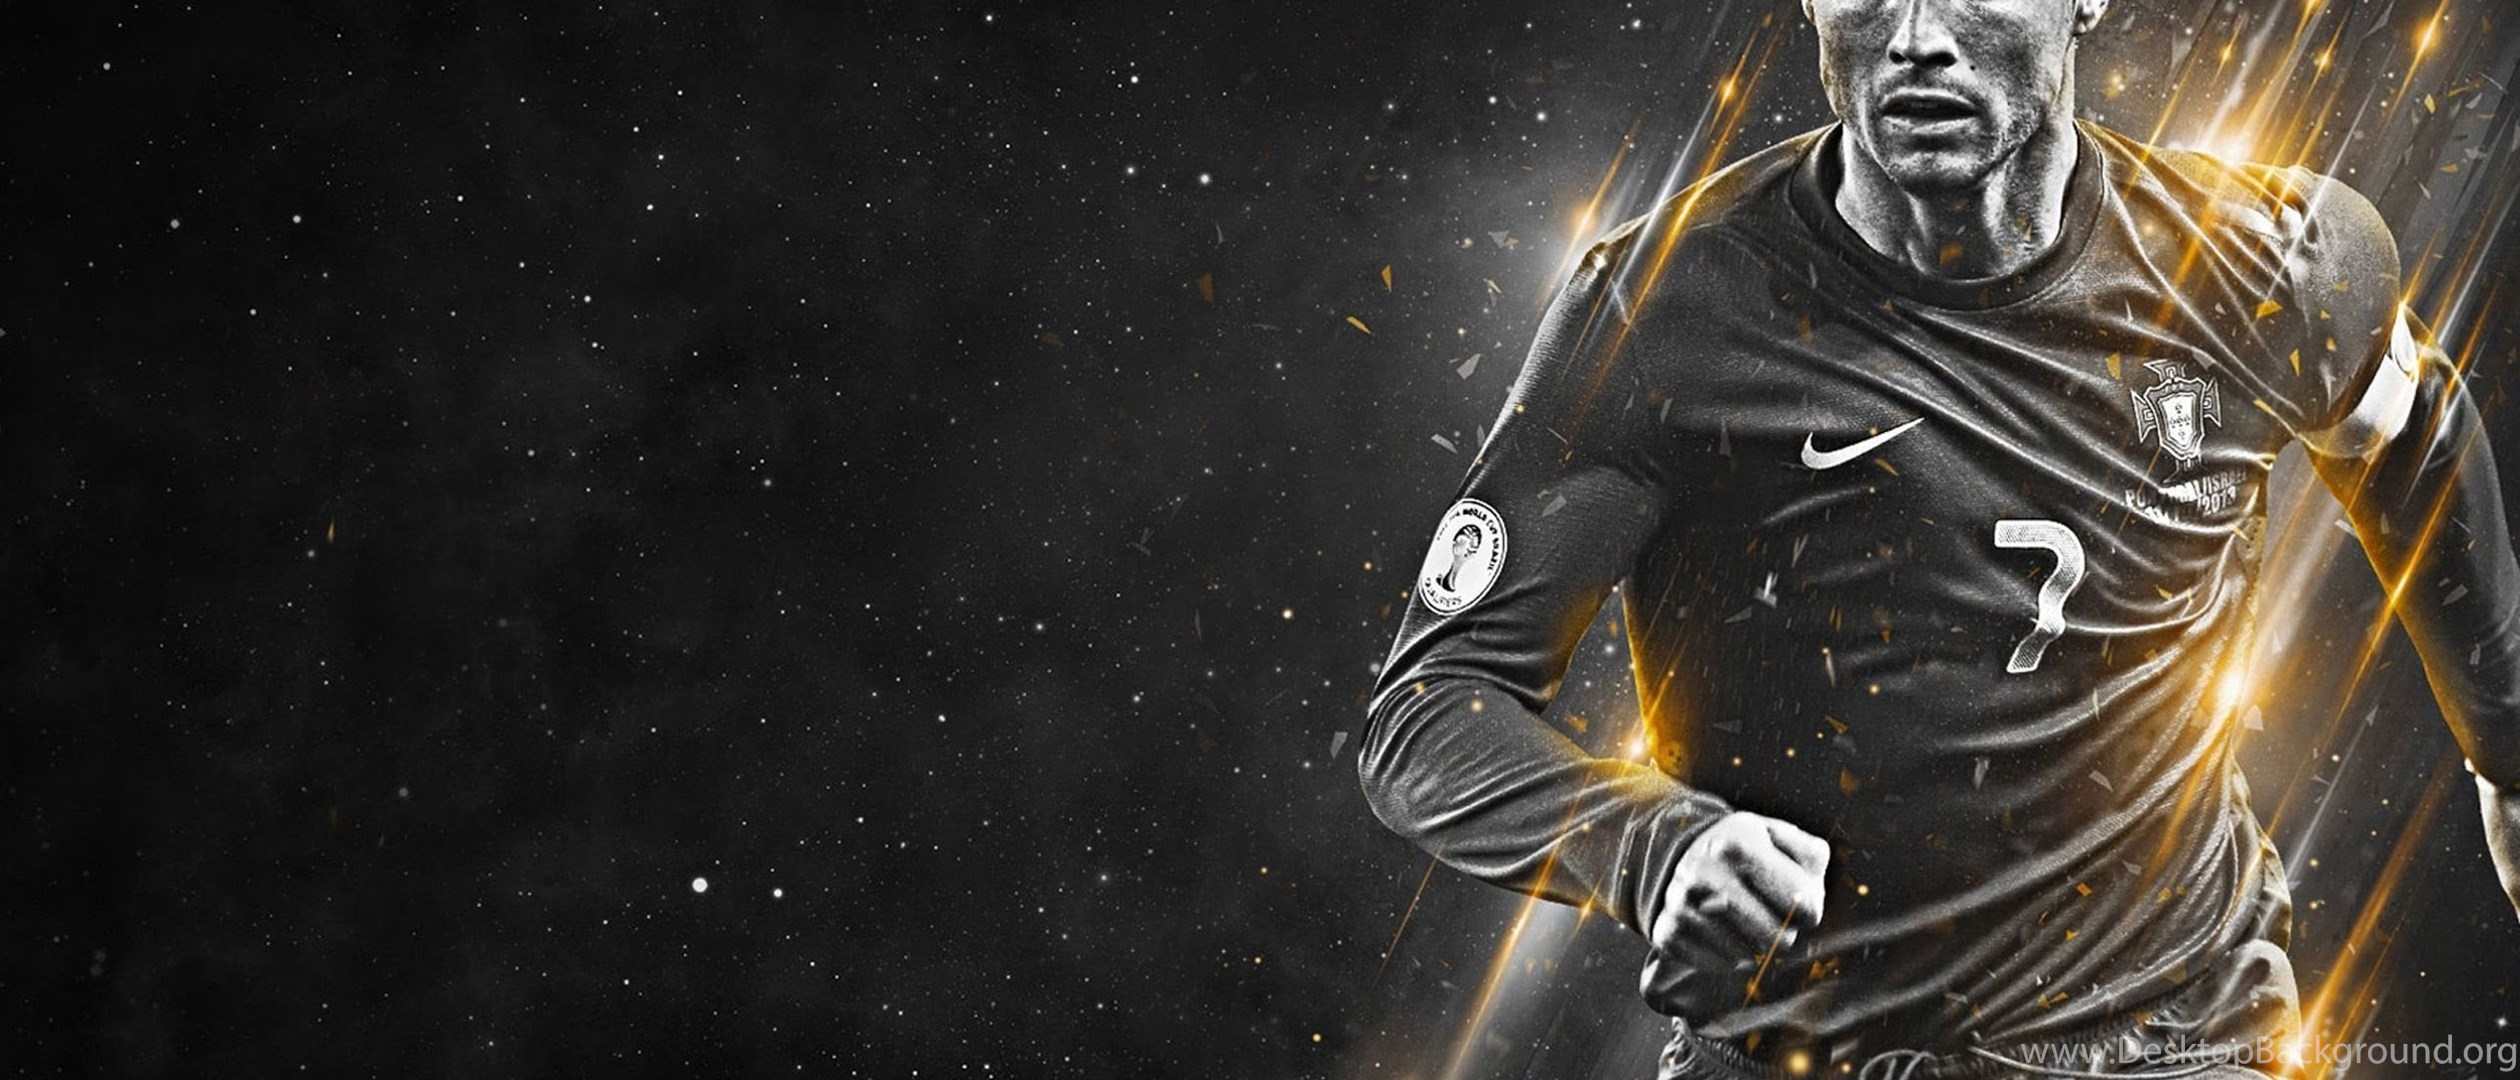 Best Football Wallpapers For Your PC, Mac Or Mobile Device